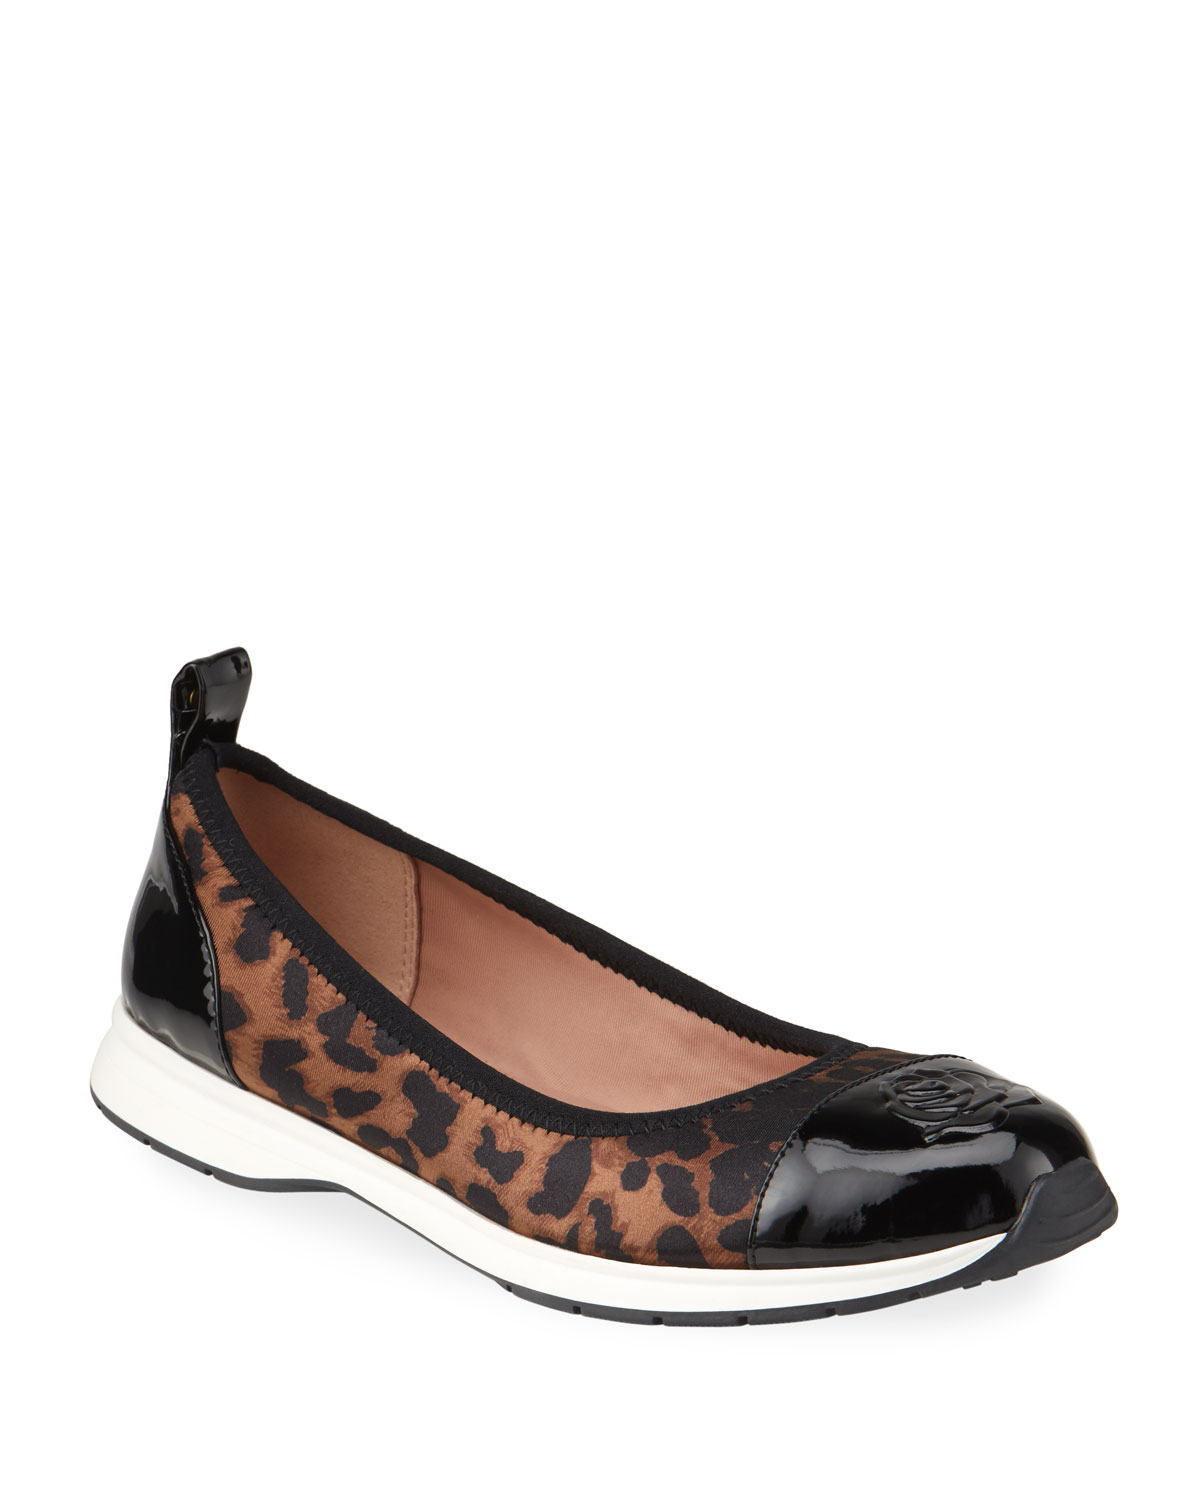 Taryn Rose Bailey Patent Rose Leopard Ballet Sneakers